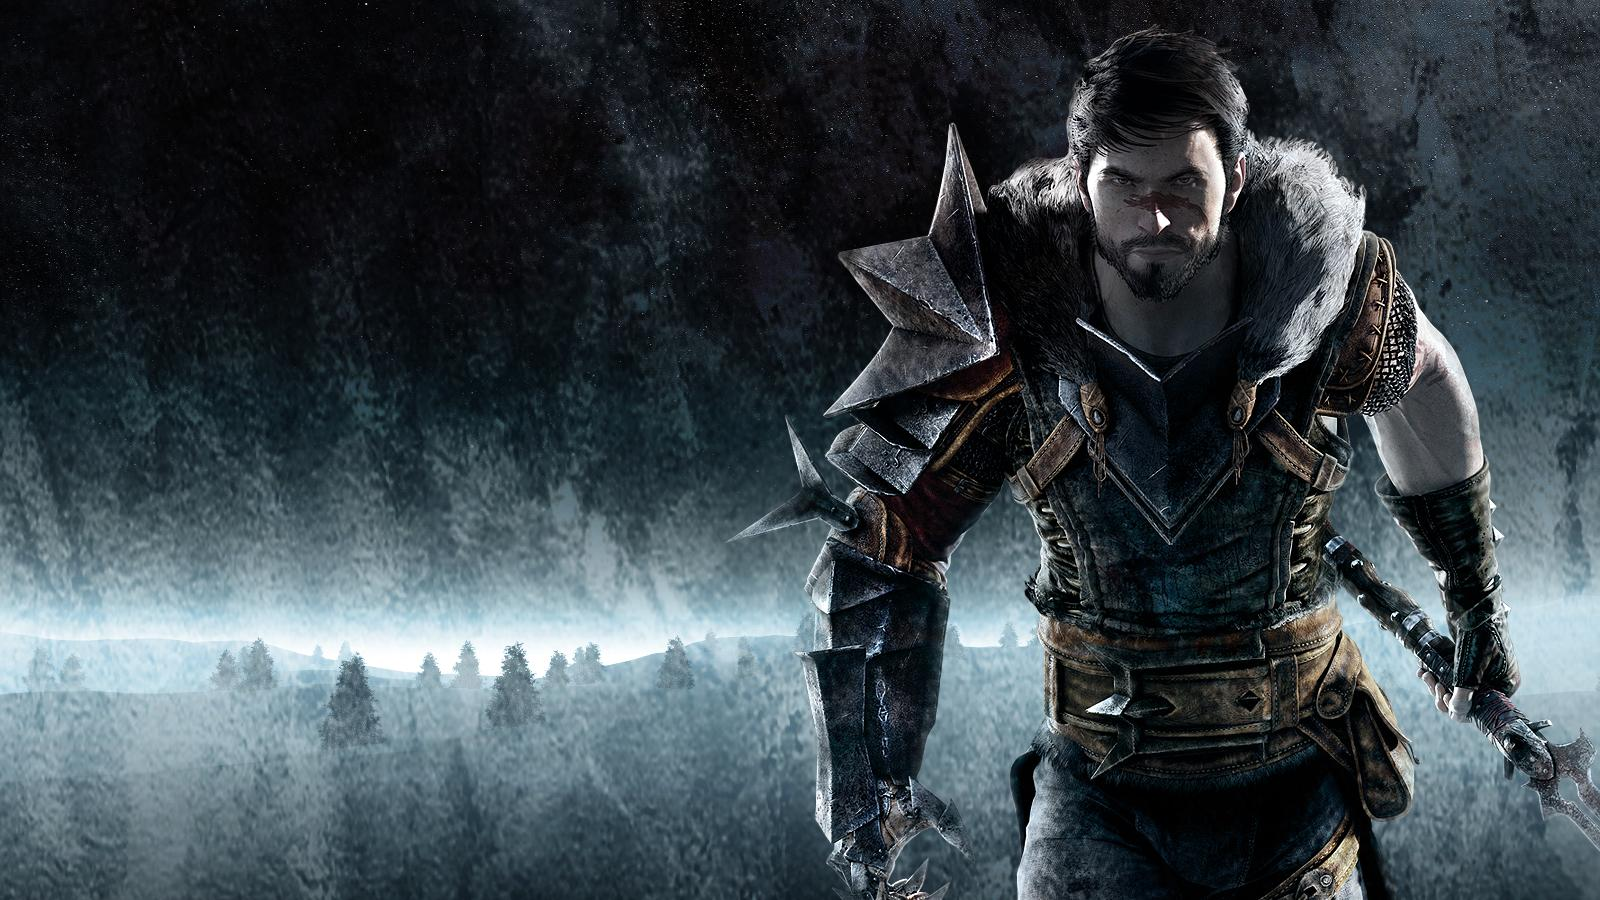 Free Download Wallpaper Dragon Age 1600x900 For Your